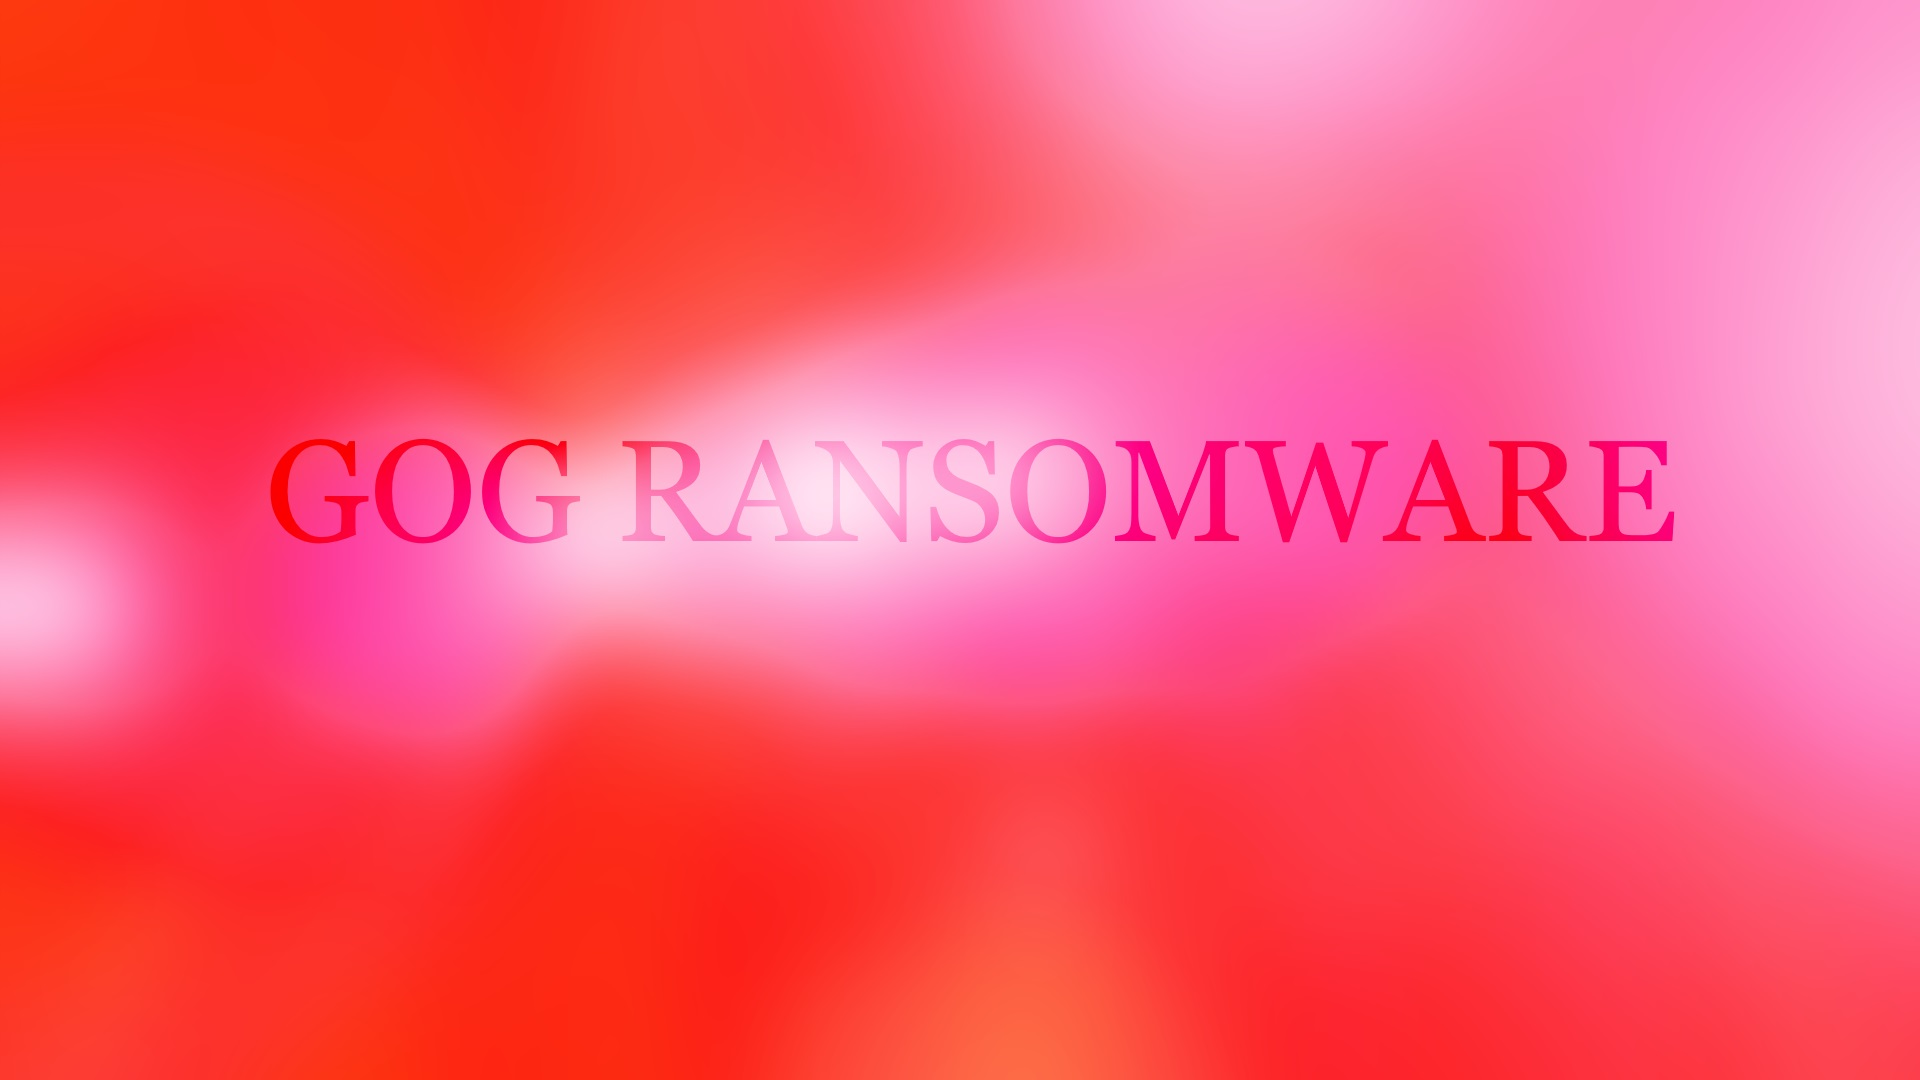 Gog Ransomware Virus (Removal Steps and Protection Updates)